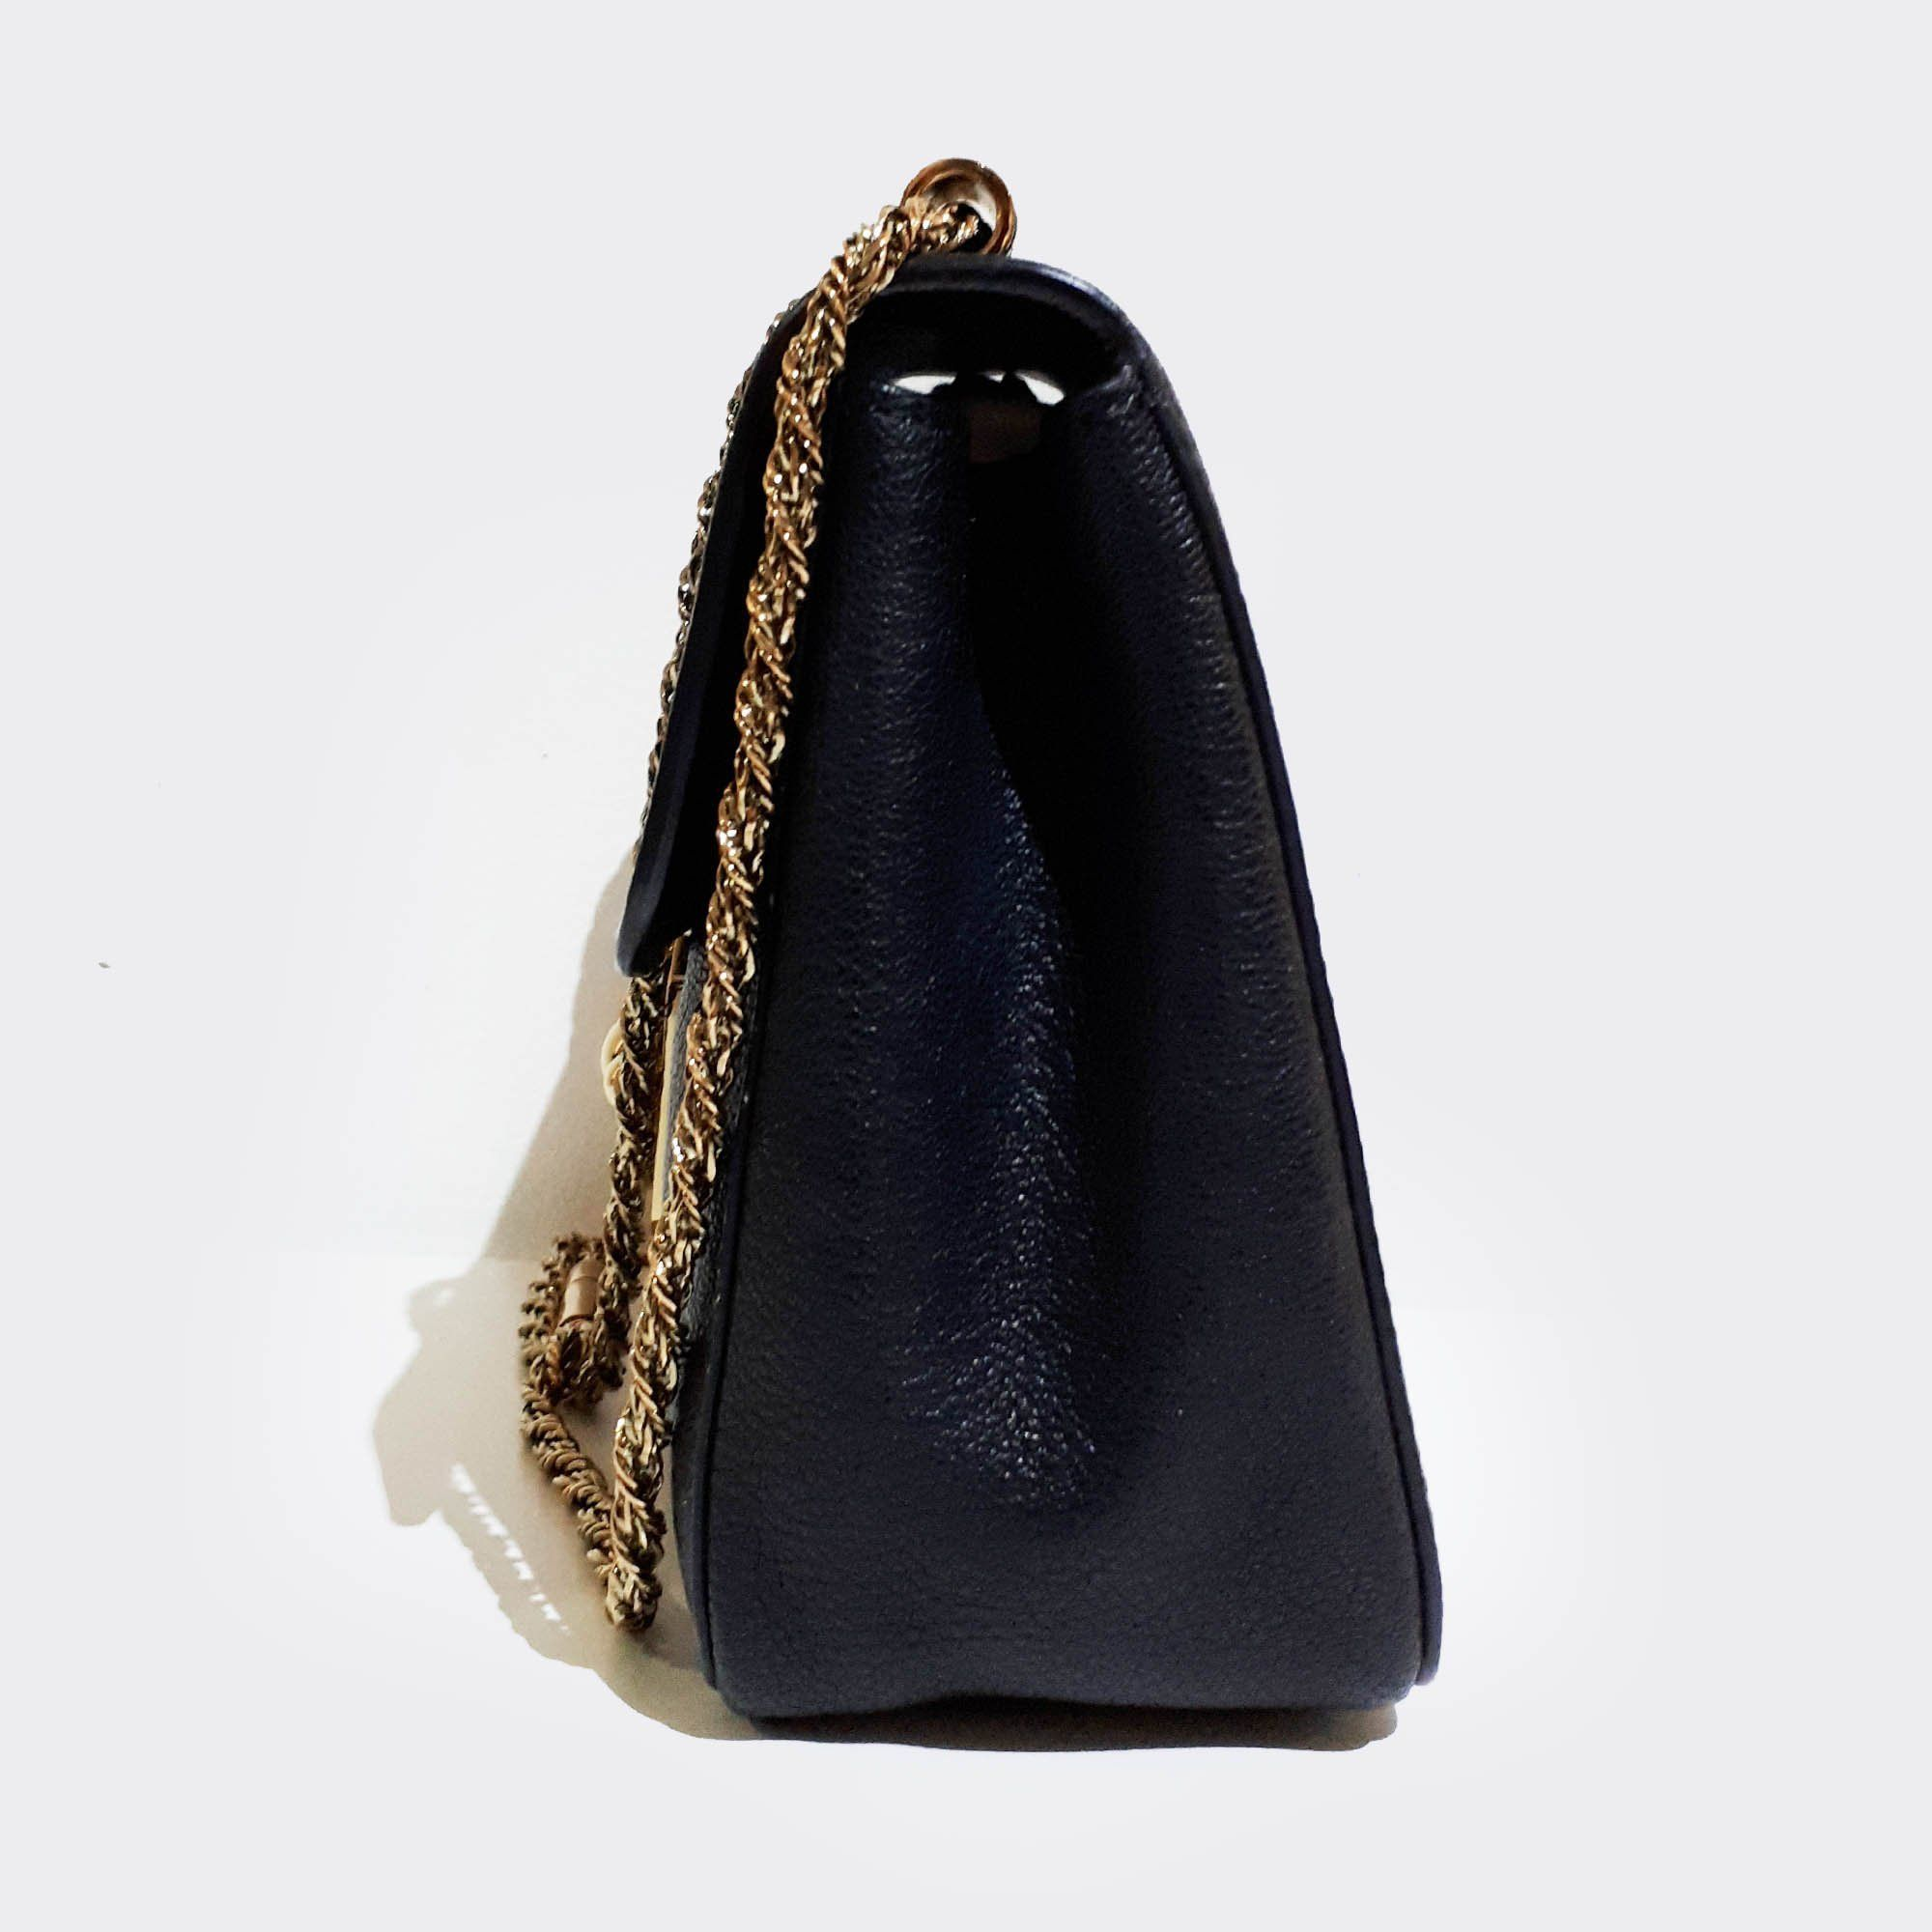 Chloé Elsie Small Black Bag